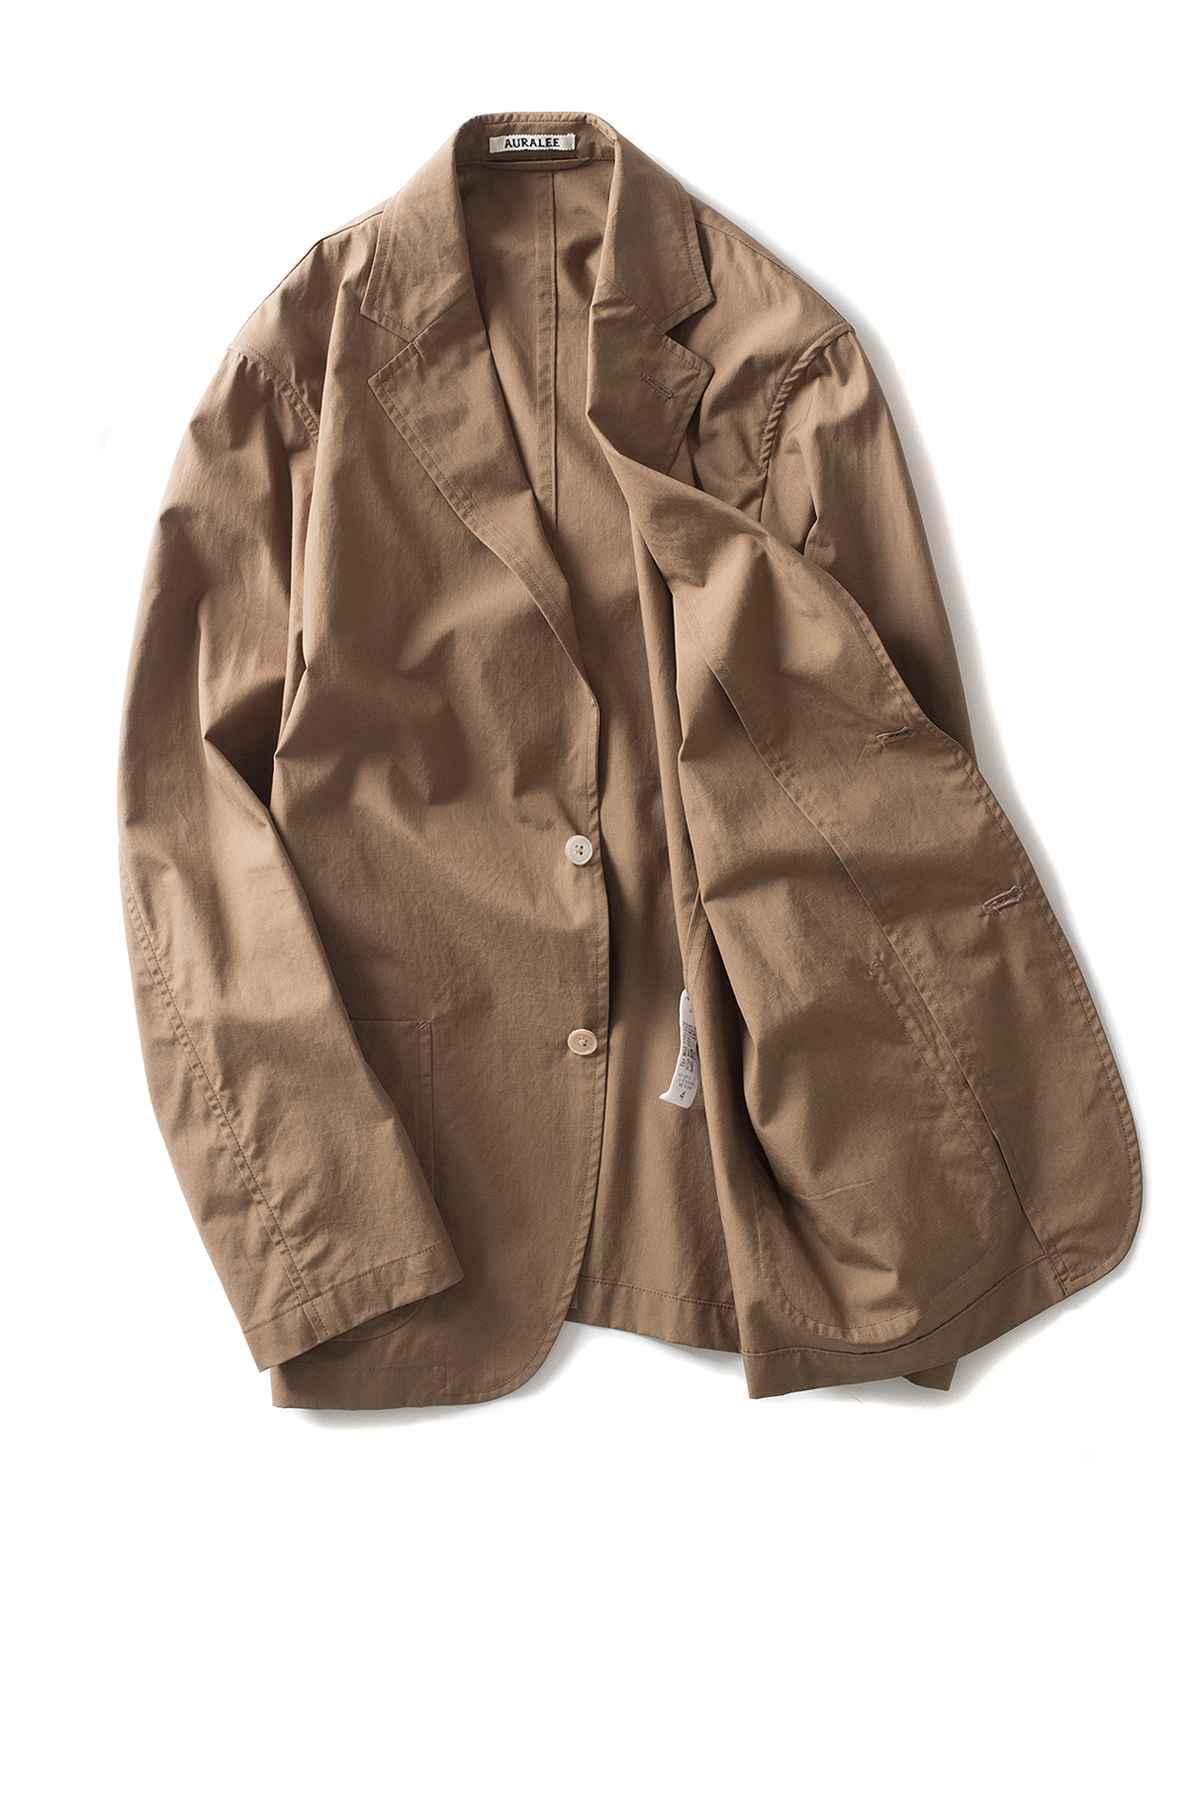 Auralee : Washed Finx Ripstop Jacket (Brown)